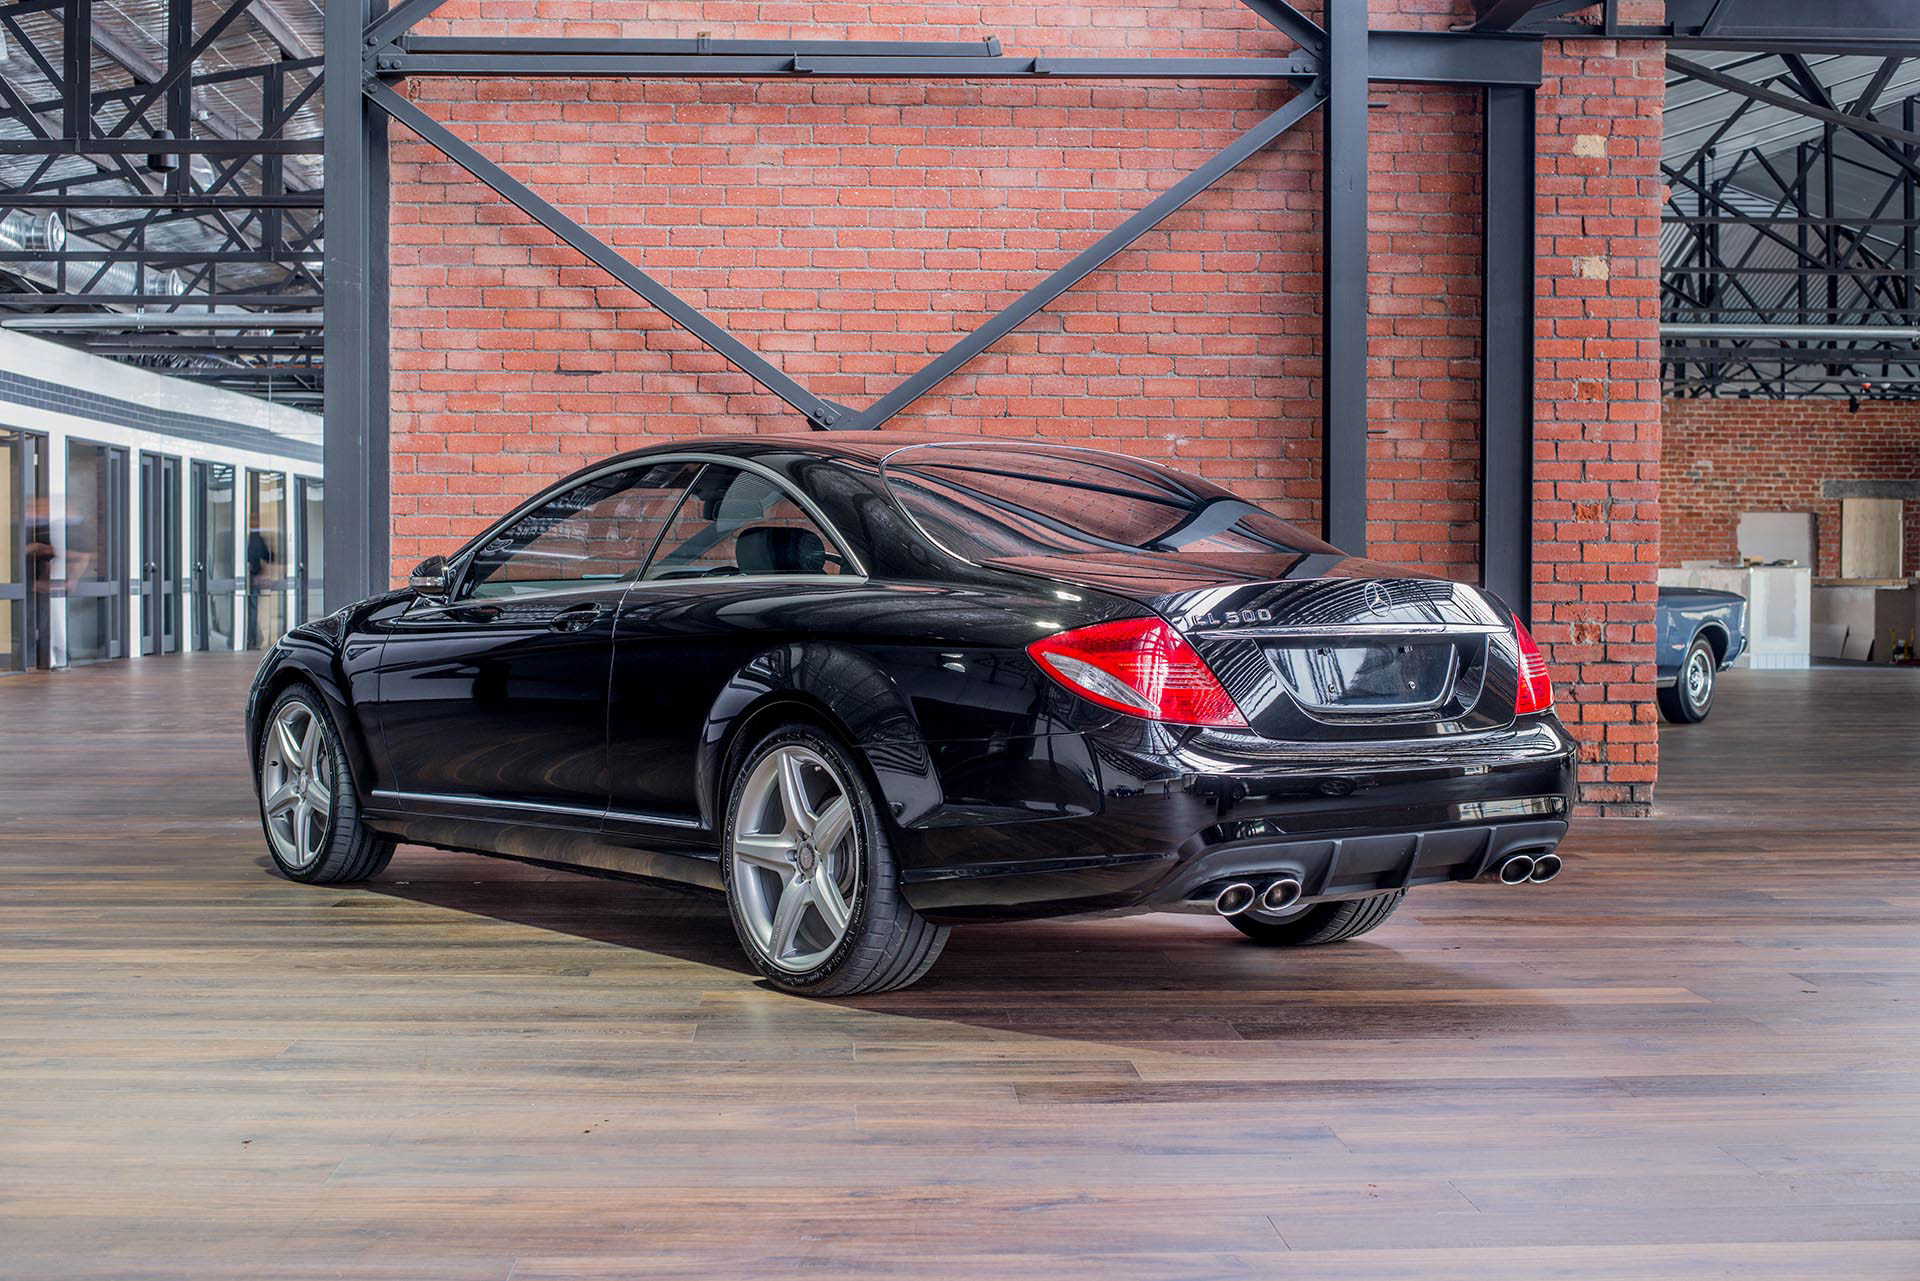 What Transmission Is In My Car >> 2009 Mercedes CL500 - Richmonds Classic, Sports & Prestige Cars Adelaide SA